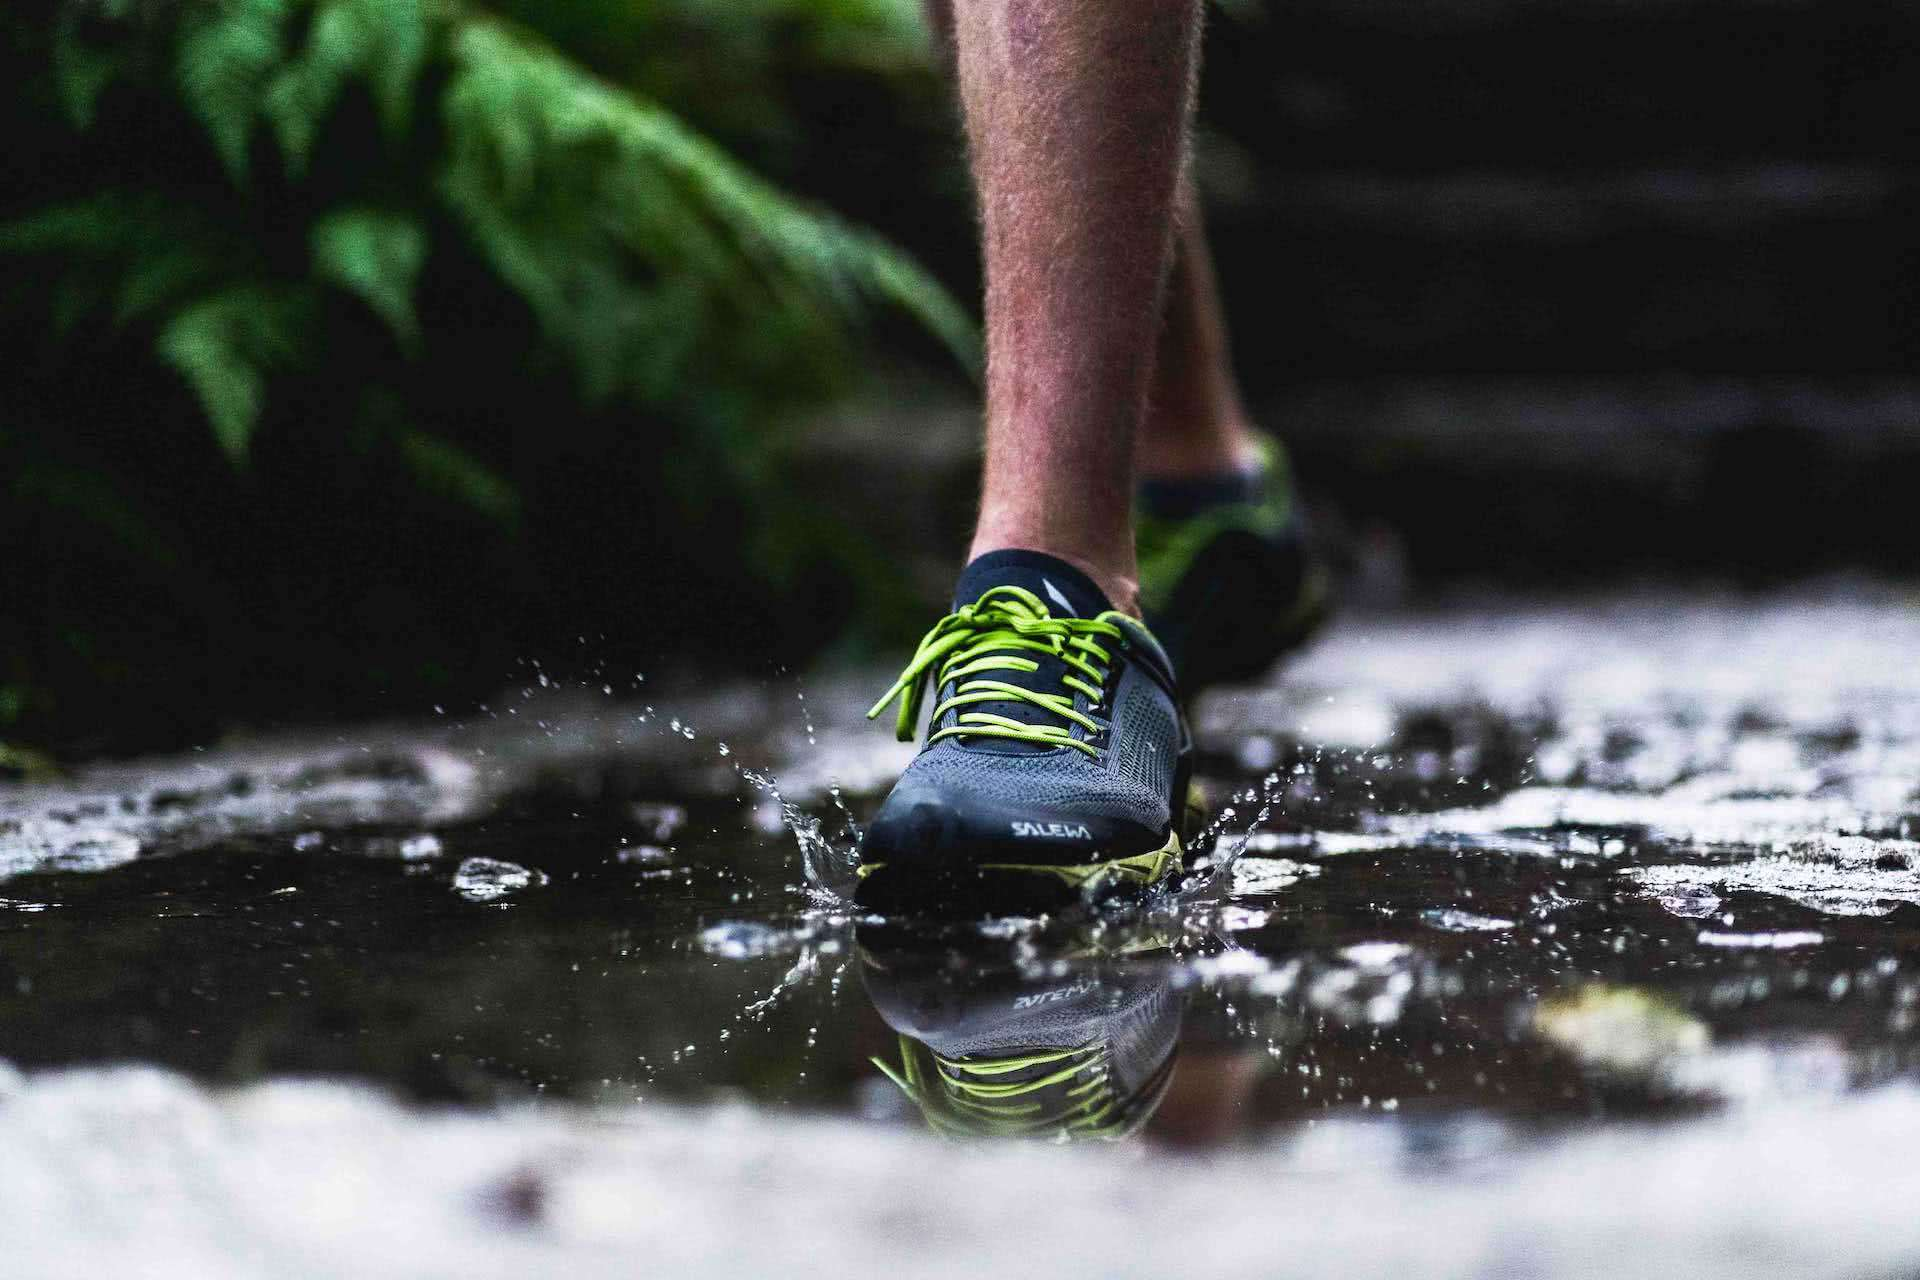 Is Speed Hiking Your New Niche Sport Obsession?, Jono Tan, Salewa, shoes, puddle, hiking, running